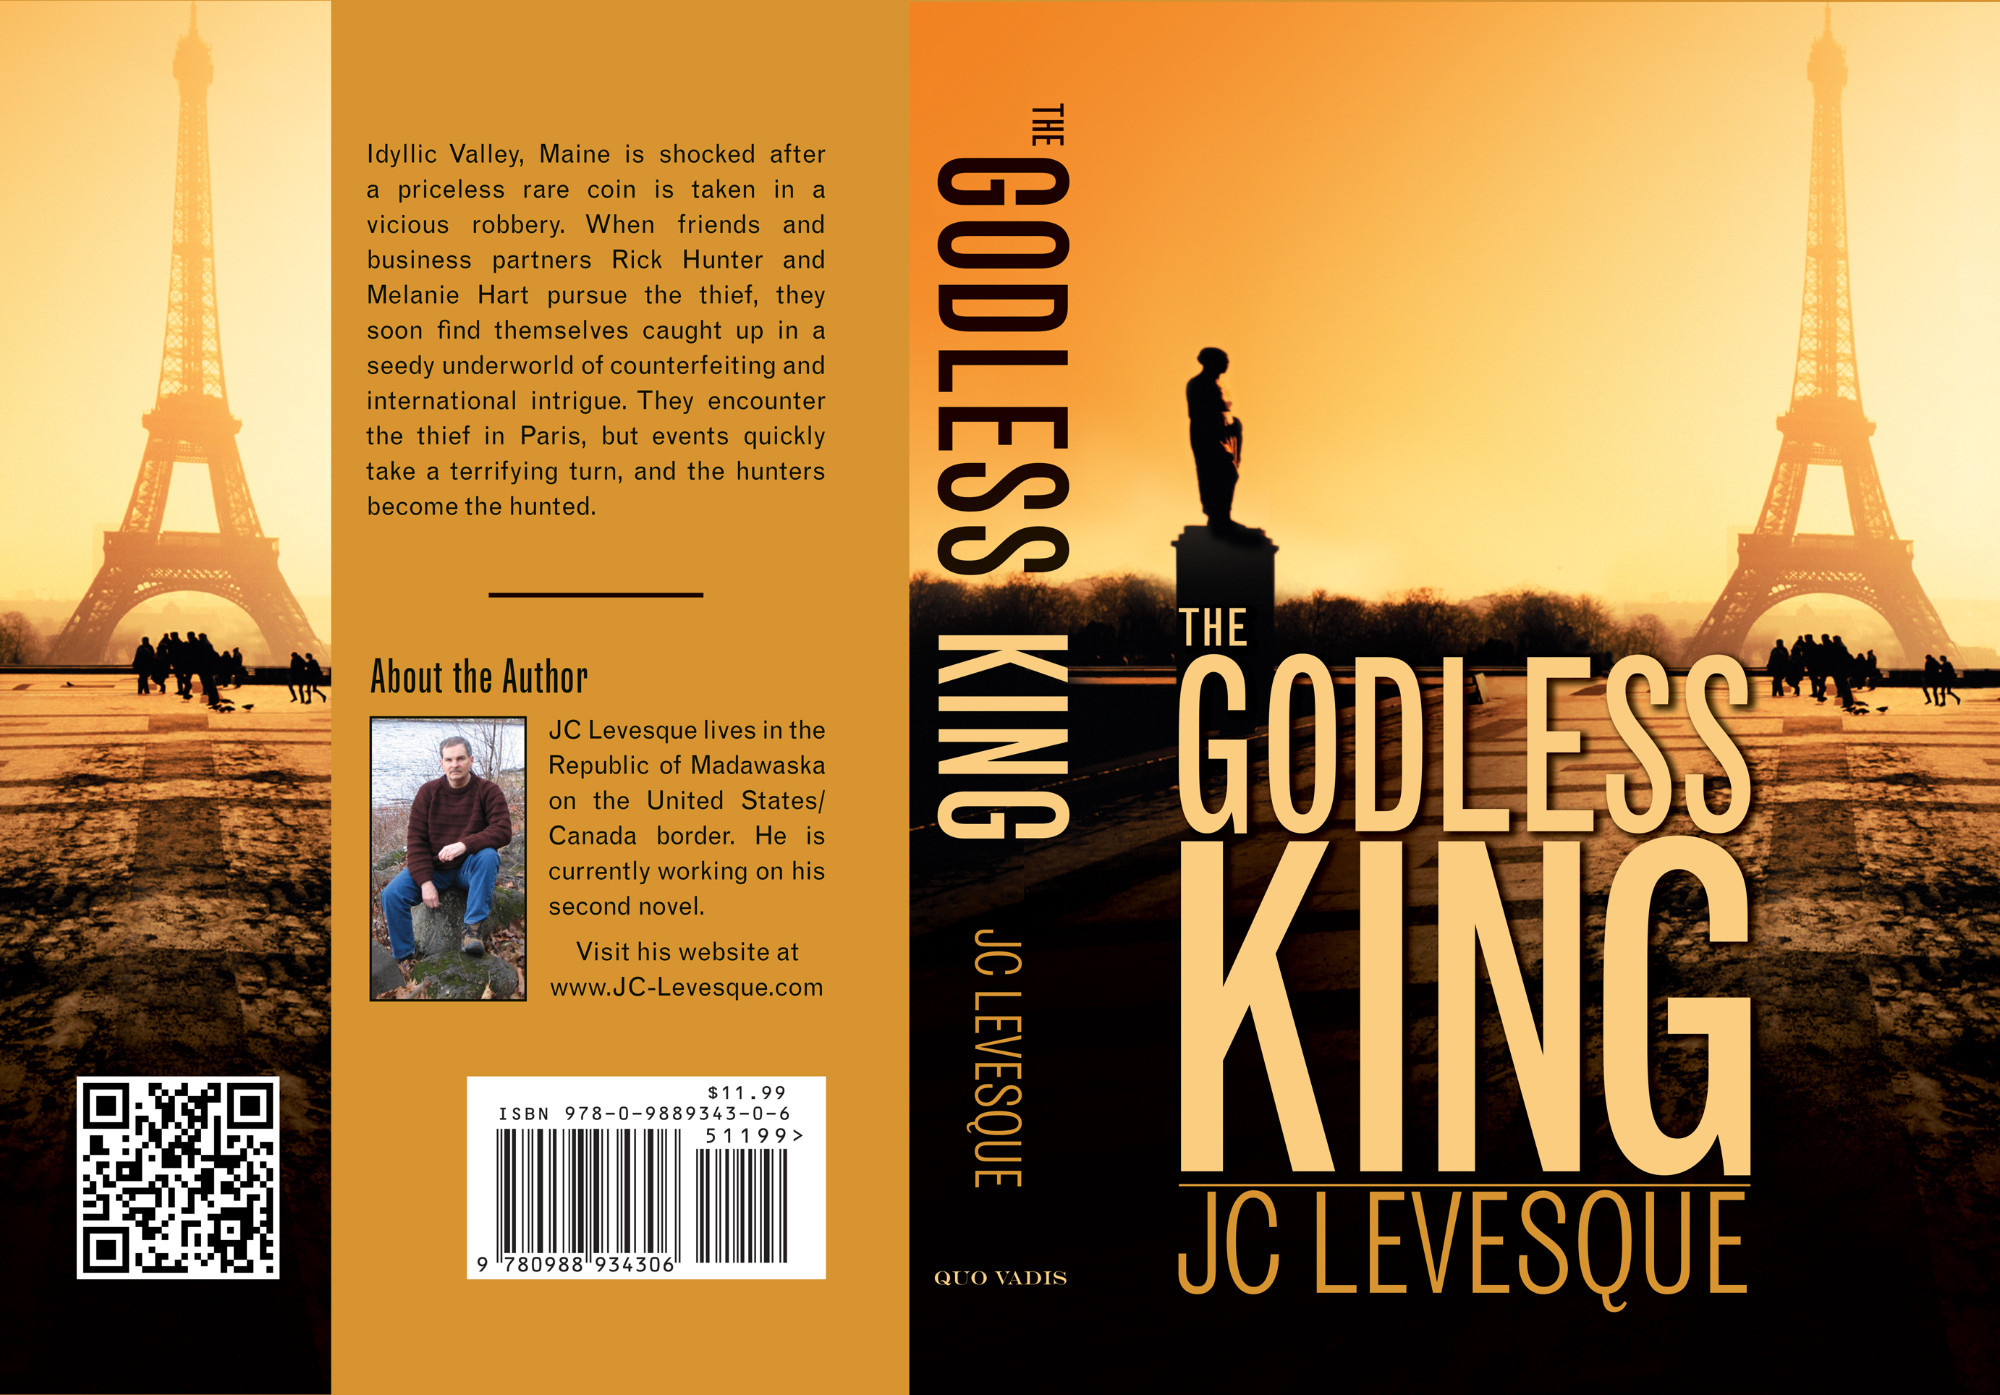 GodlessKing_Coverspread_Final_22013_576-145.jpg